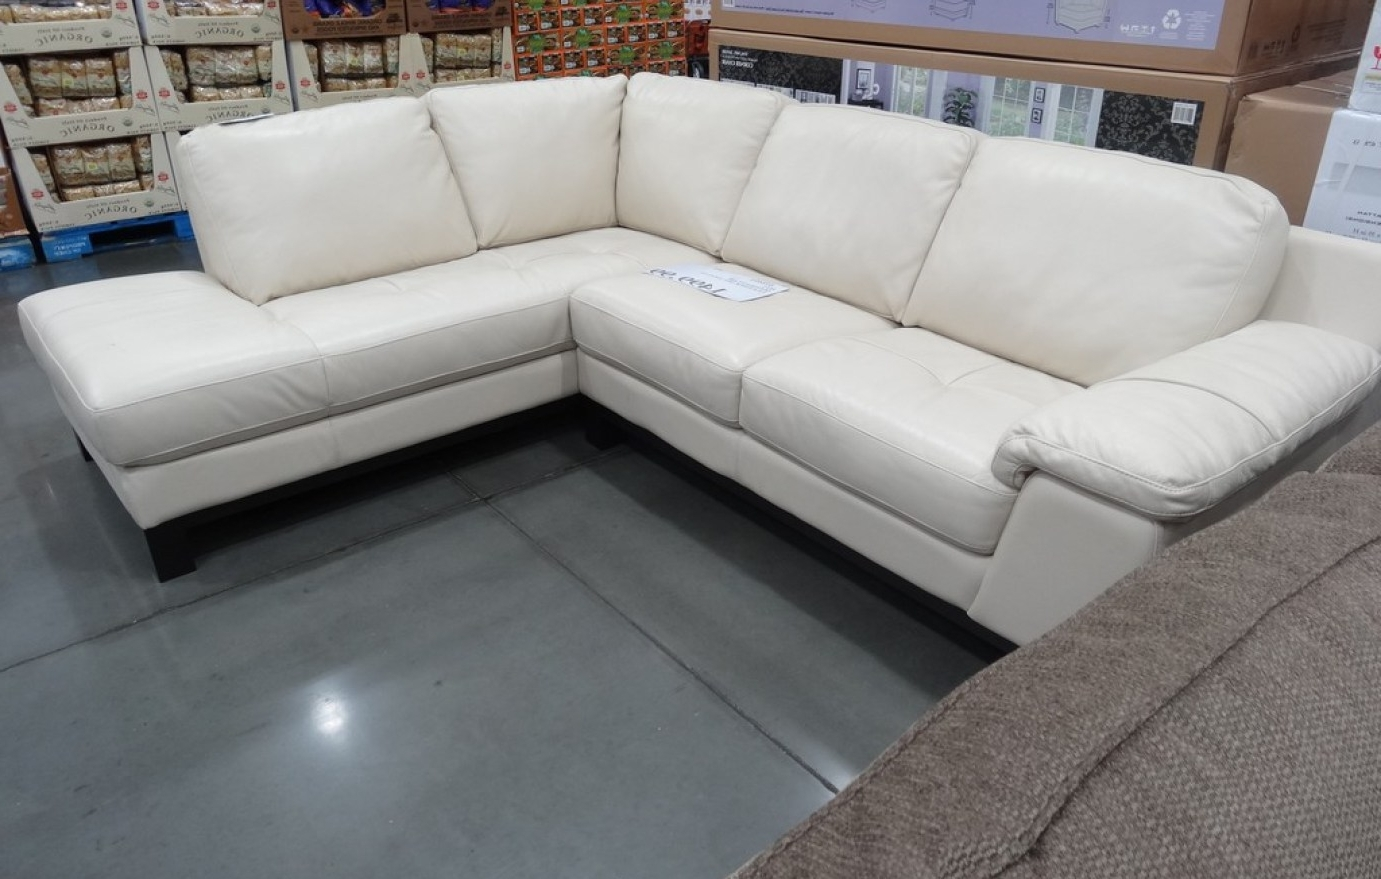 Sectional Sofas At Costco Throughout Newest Costco Sectional Sleeper Sofa – Nrhcares (View 8 of 15)